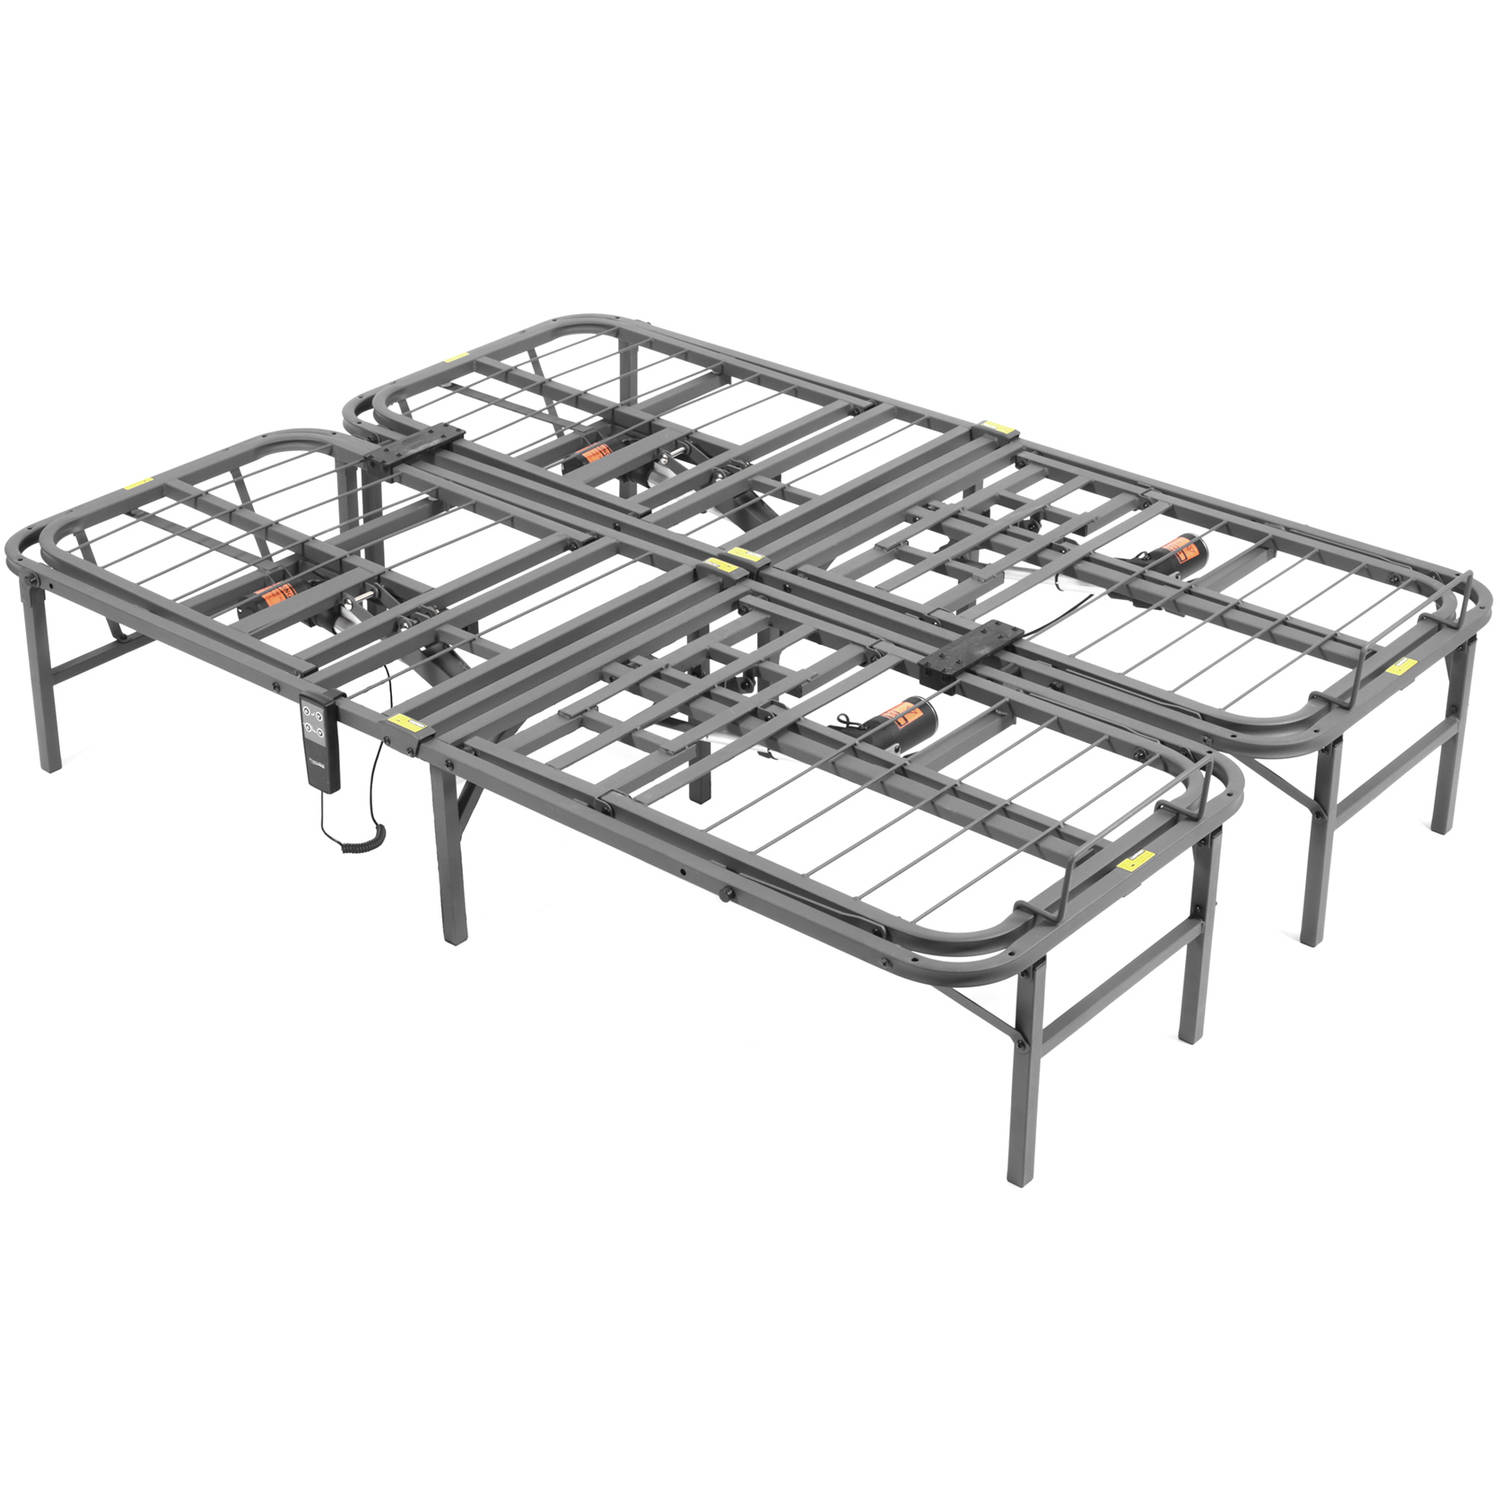 Pragmatic 14 High Profile Dual Adjustable Steel Bed Frame With